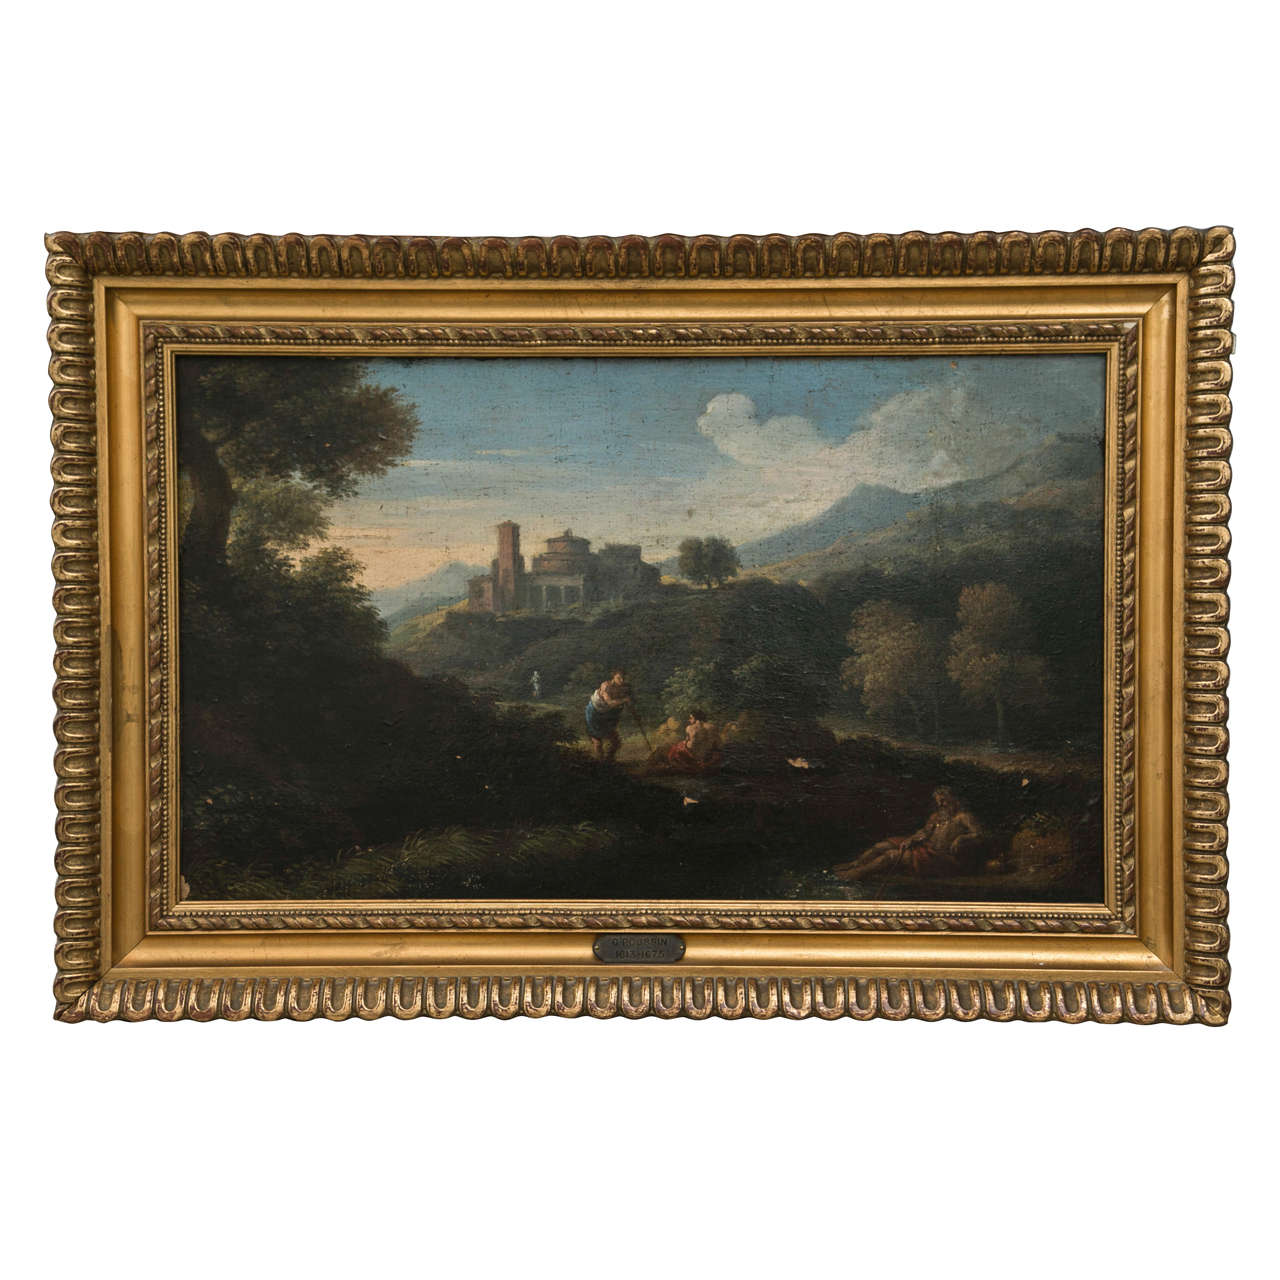 Late 17th-18th Century Roman Landscape with Figures